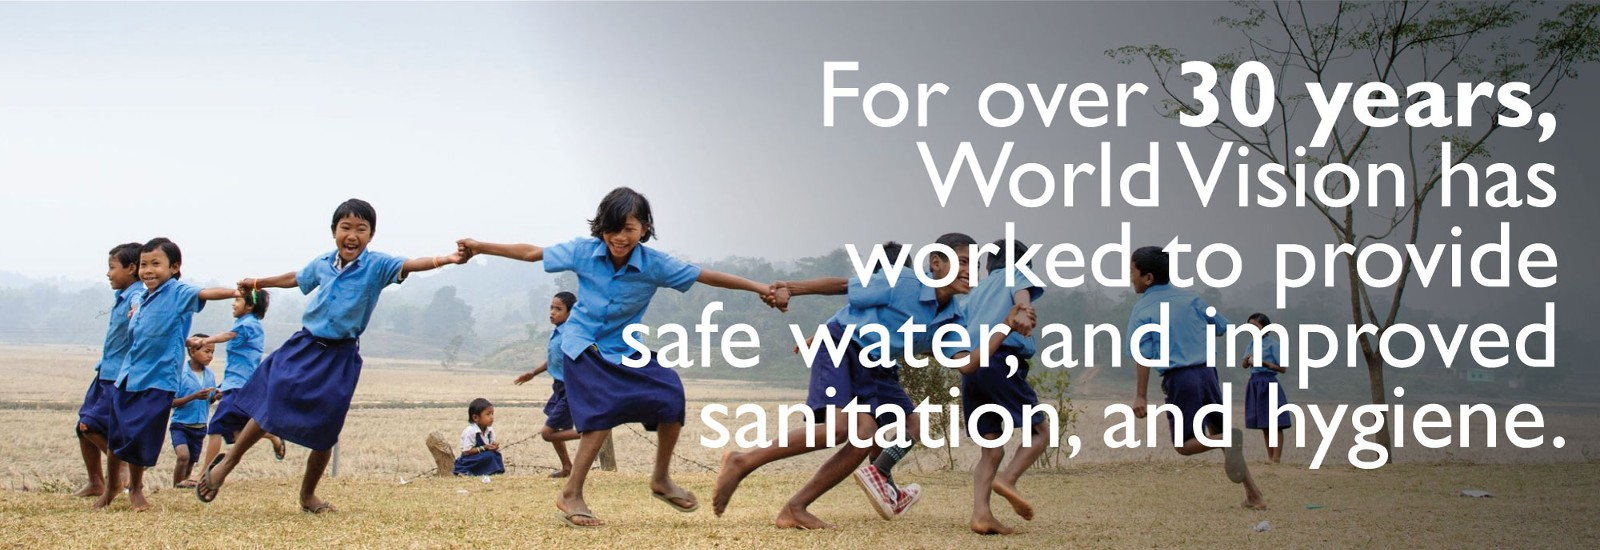 For over 30 years, World Vision has worked to provide safe water and improved sanitation